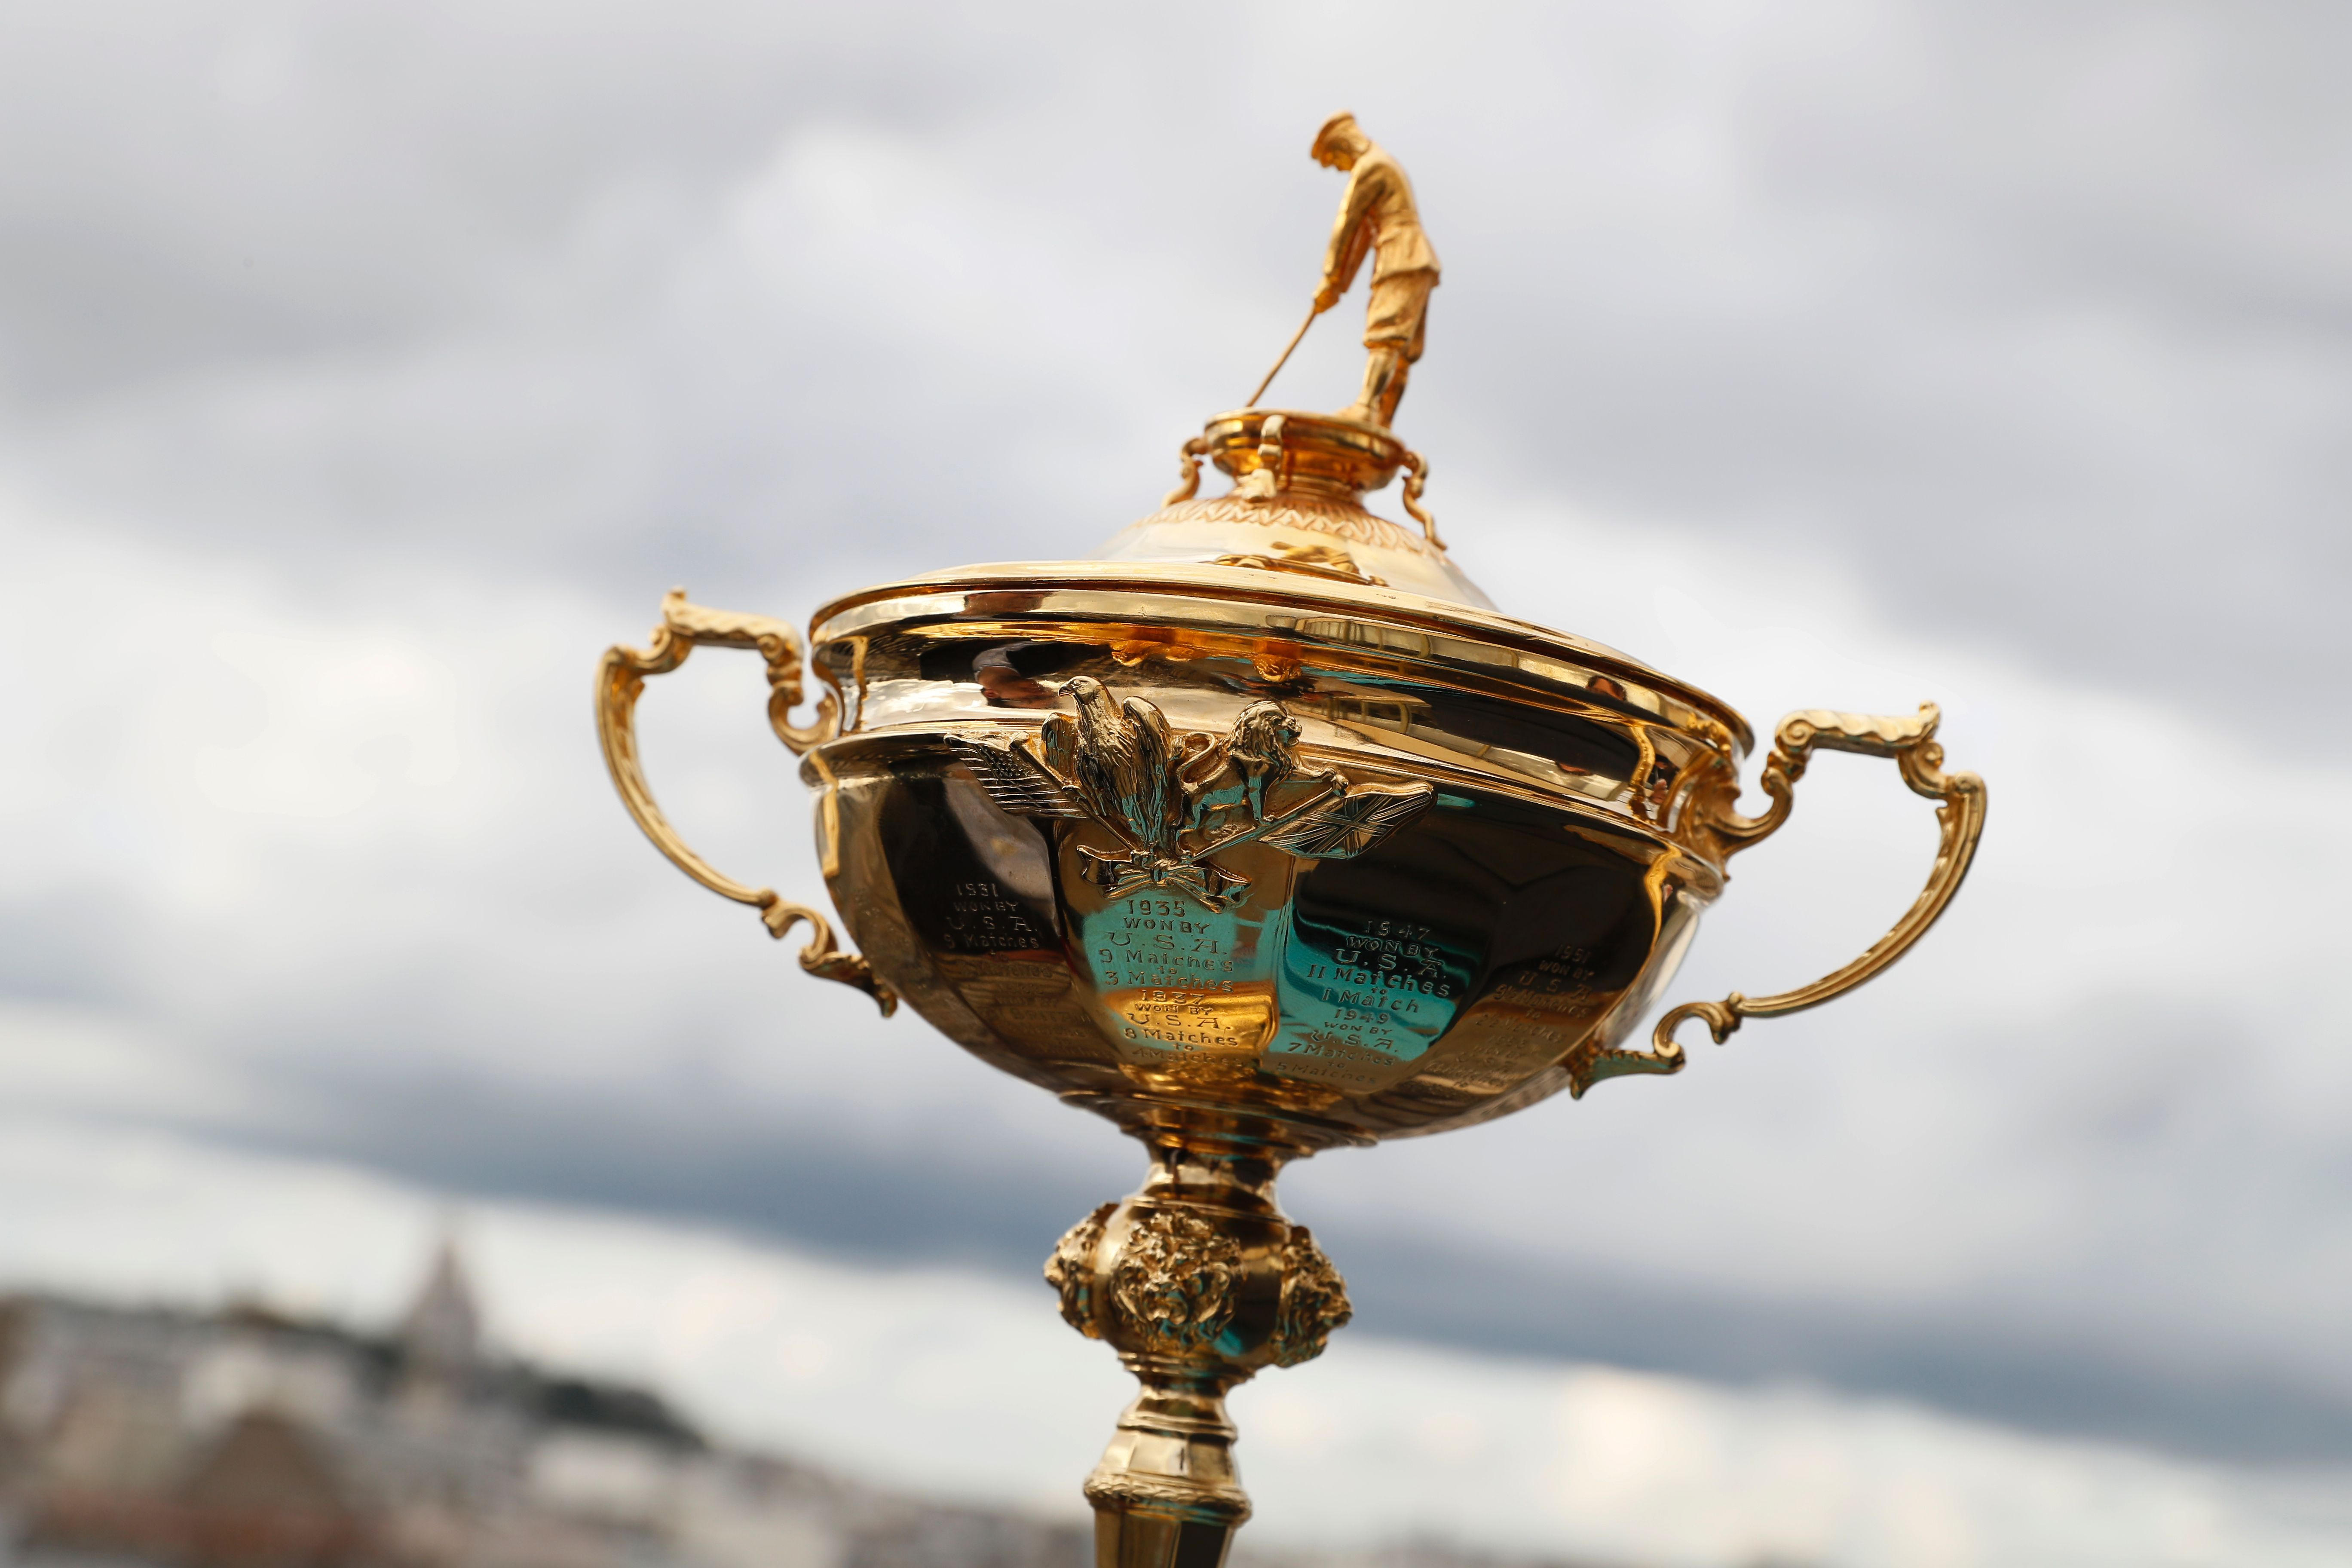 Who is that man on top of the Ryder Cup? It's not Samuel Ryder.